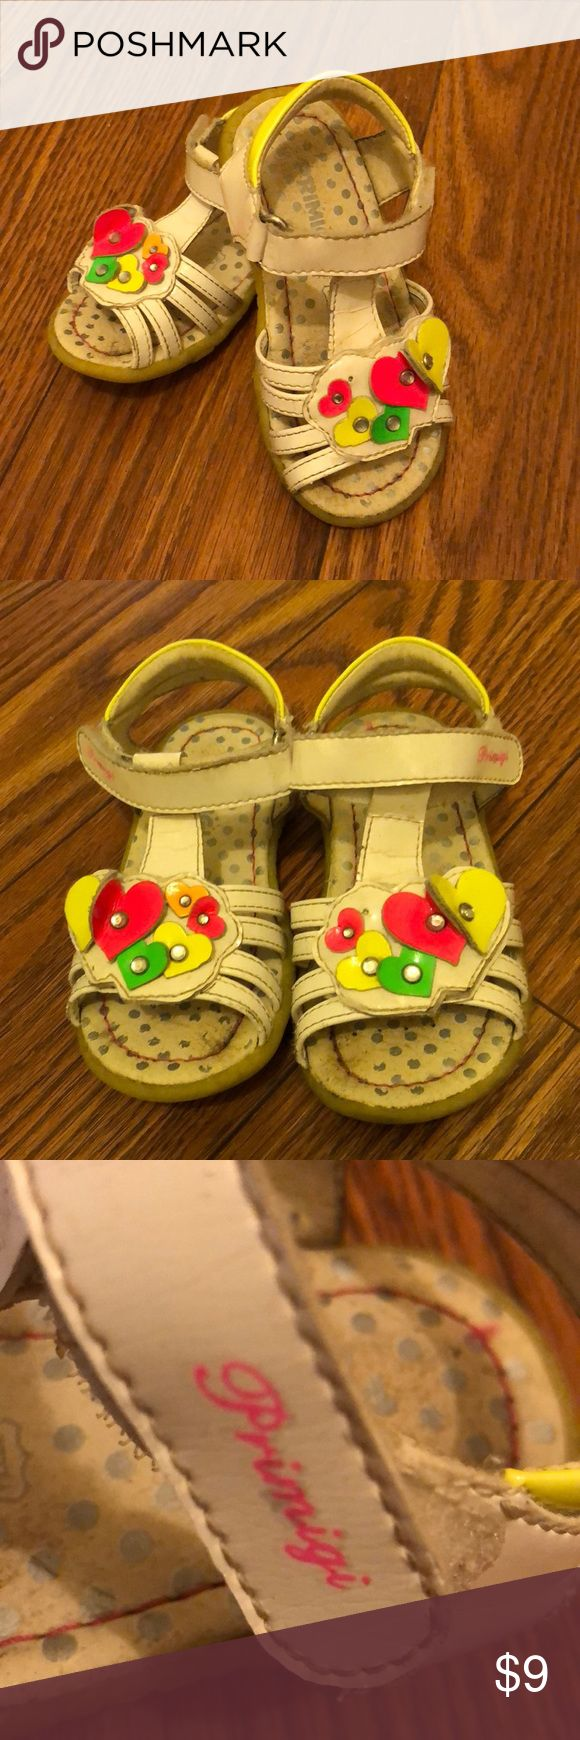 Cute Primigi Sandals Bright colors and fully adjustable straps make these sandals a winner. They are in good working condition with some wear on the footbed and soles. Some minor fraying around the straps, and minor cracking in the patent leather. Primigi Shoes Sandals & Flip Flops